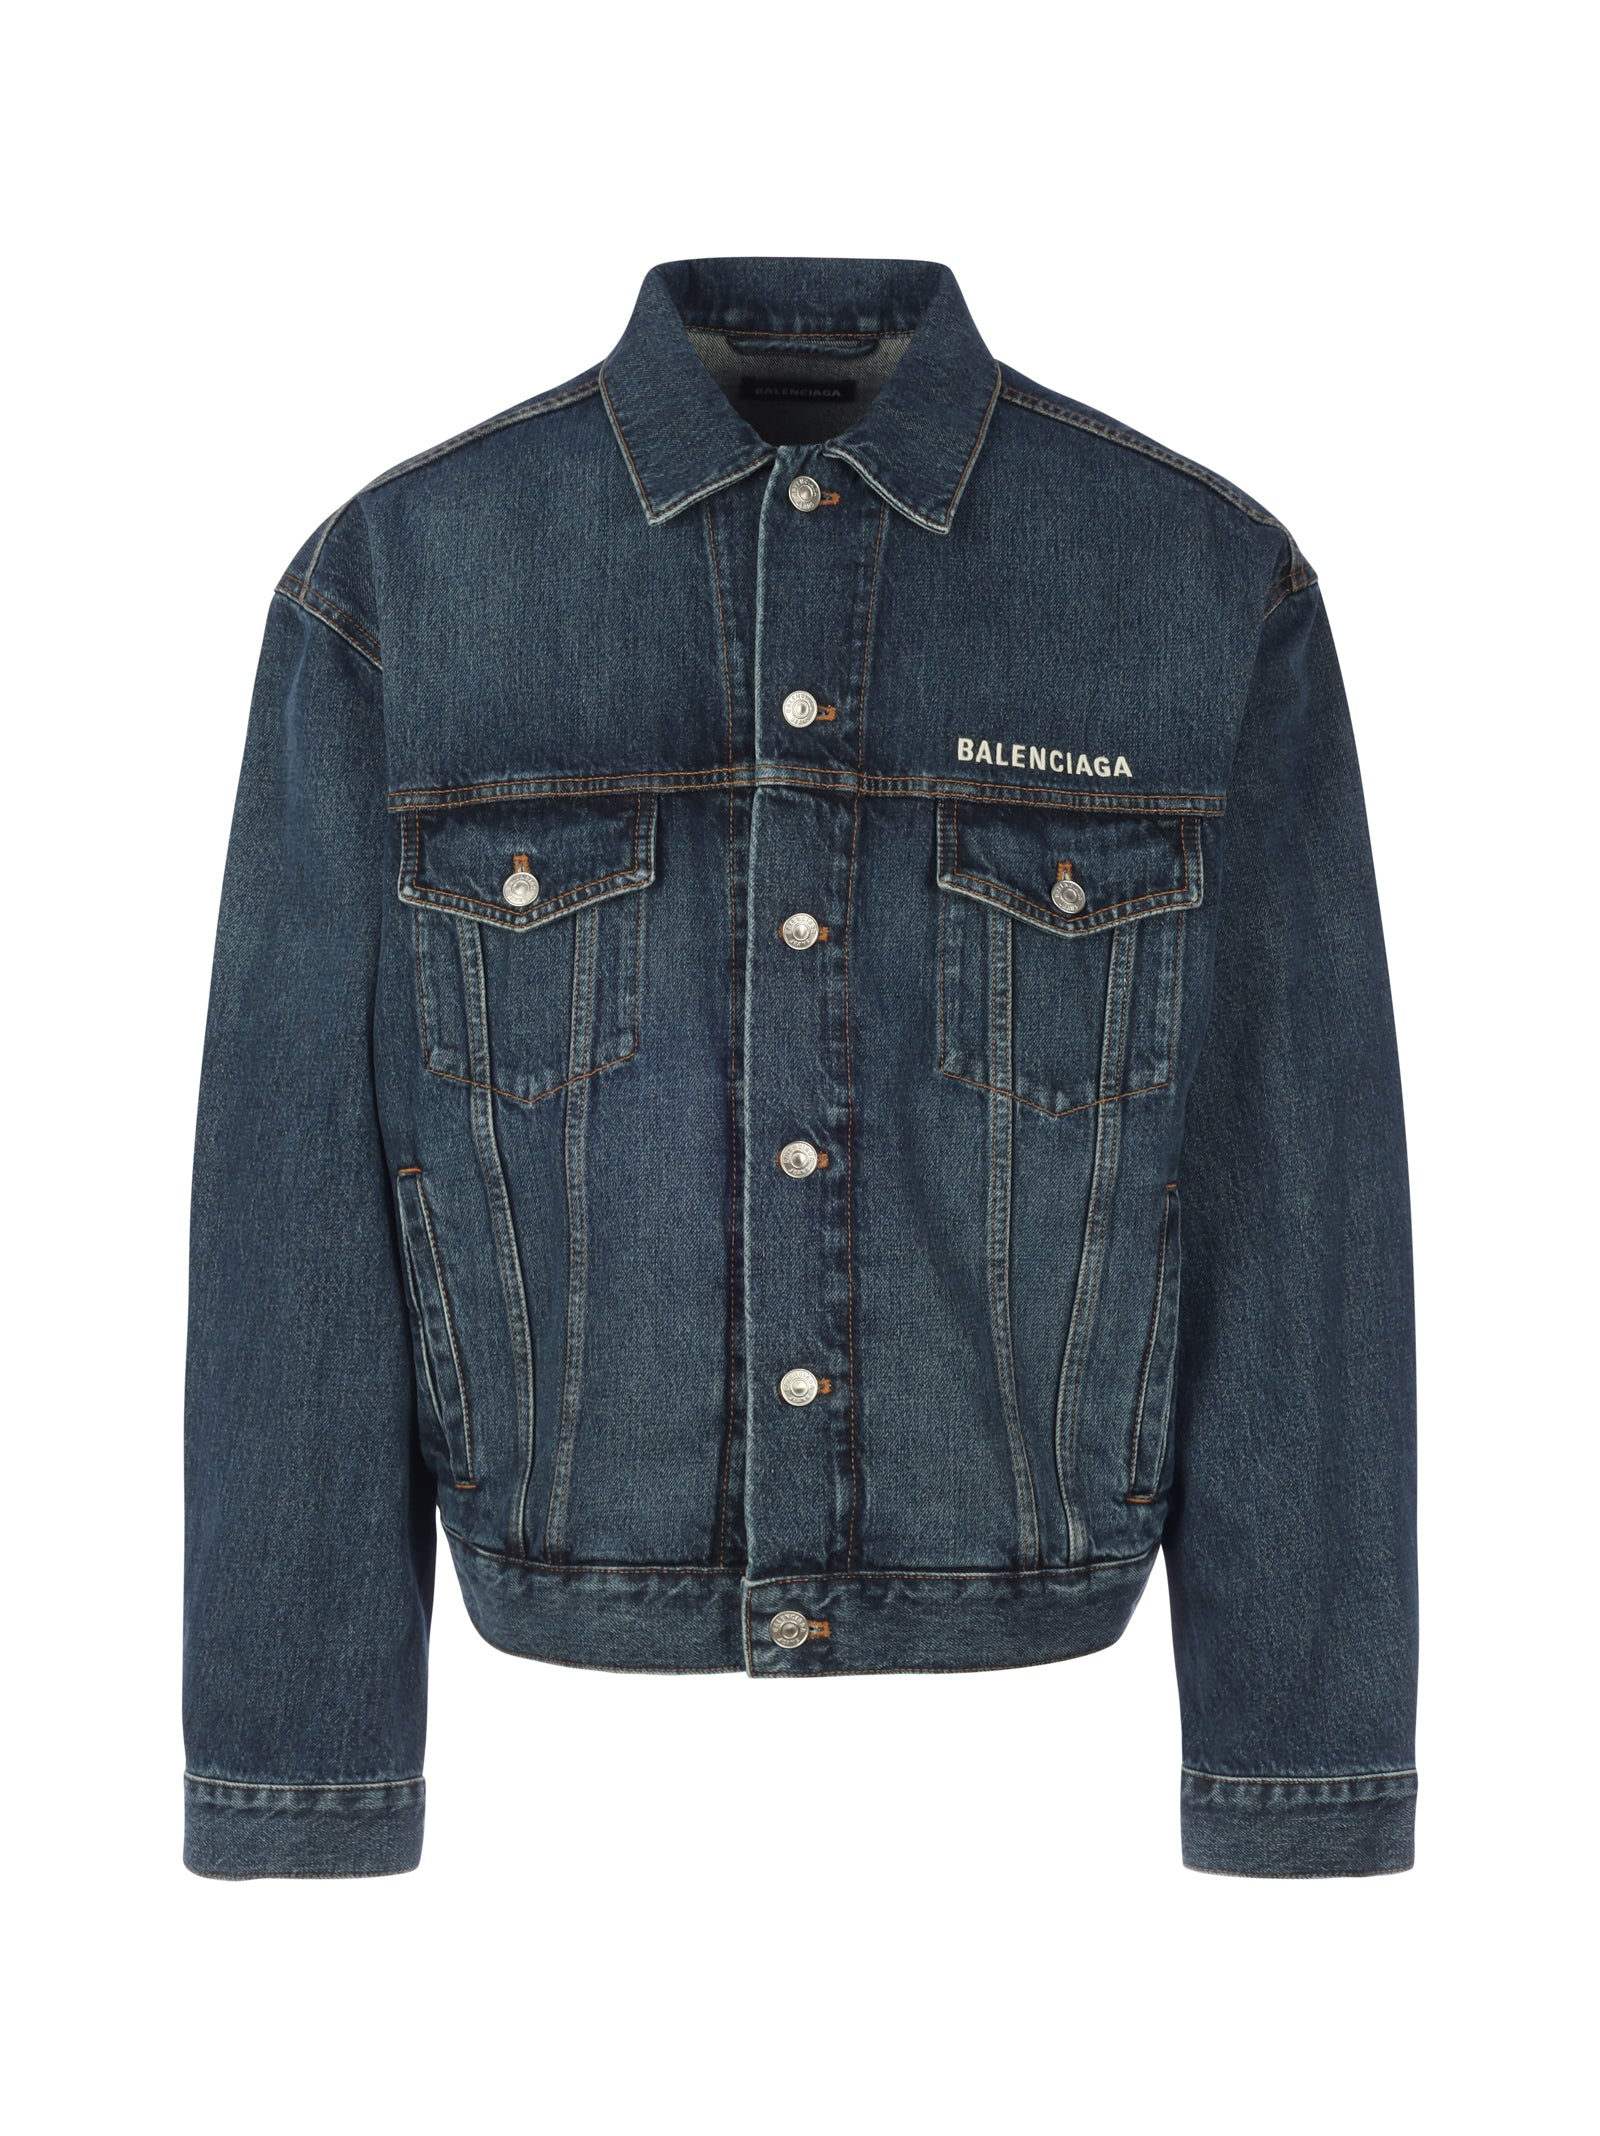 LARGE FIT DENIM JACKET